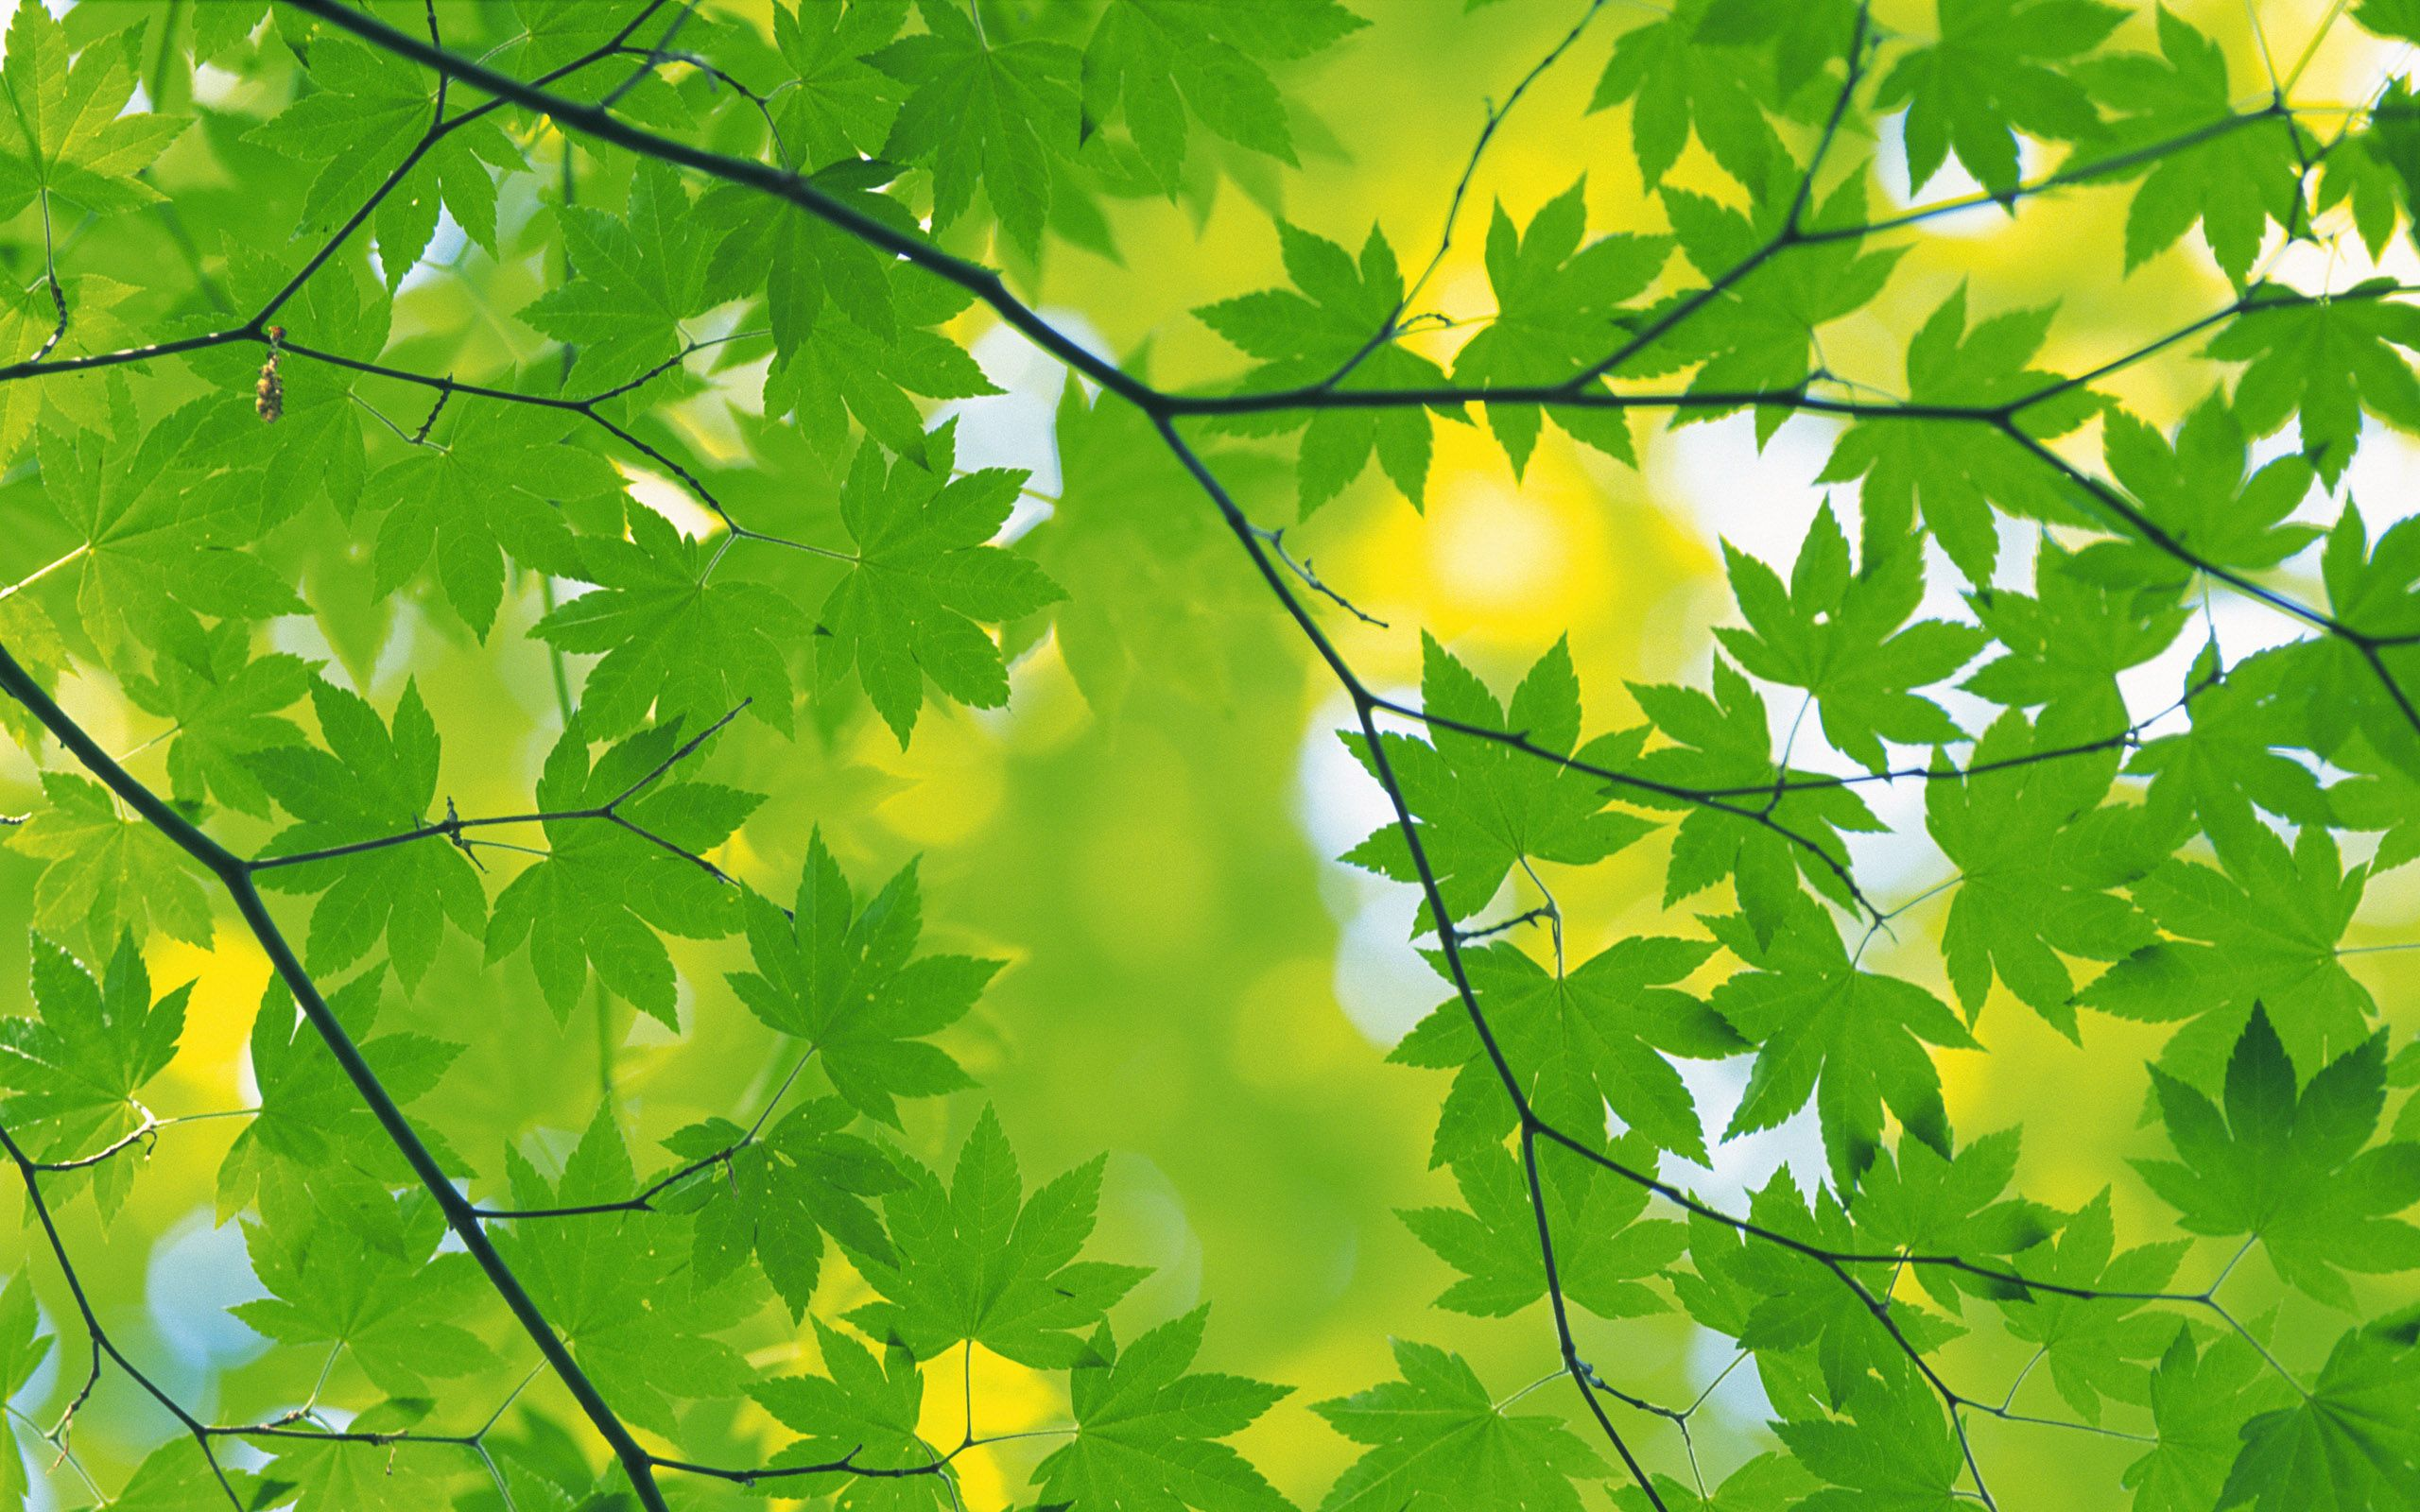 Green Leaves Wallpapers Wallpapers Backgrounds Images Art Photos Green Leaf Wallpaper Plant Wallpaper Green Nature Wallpaper